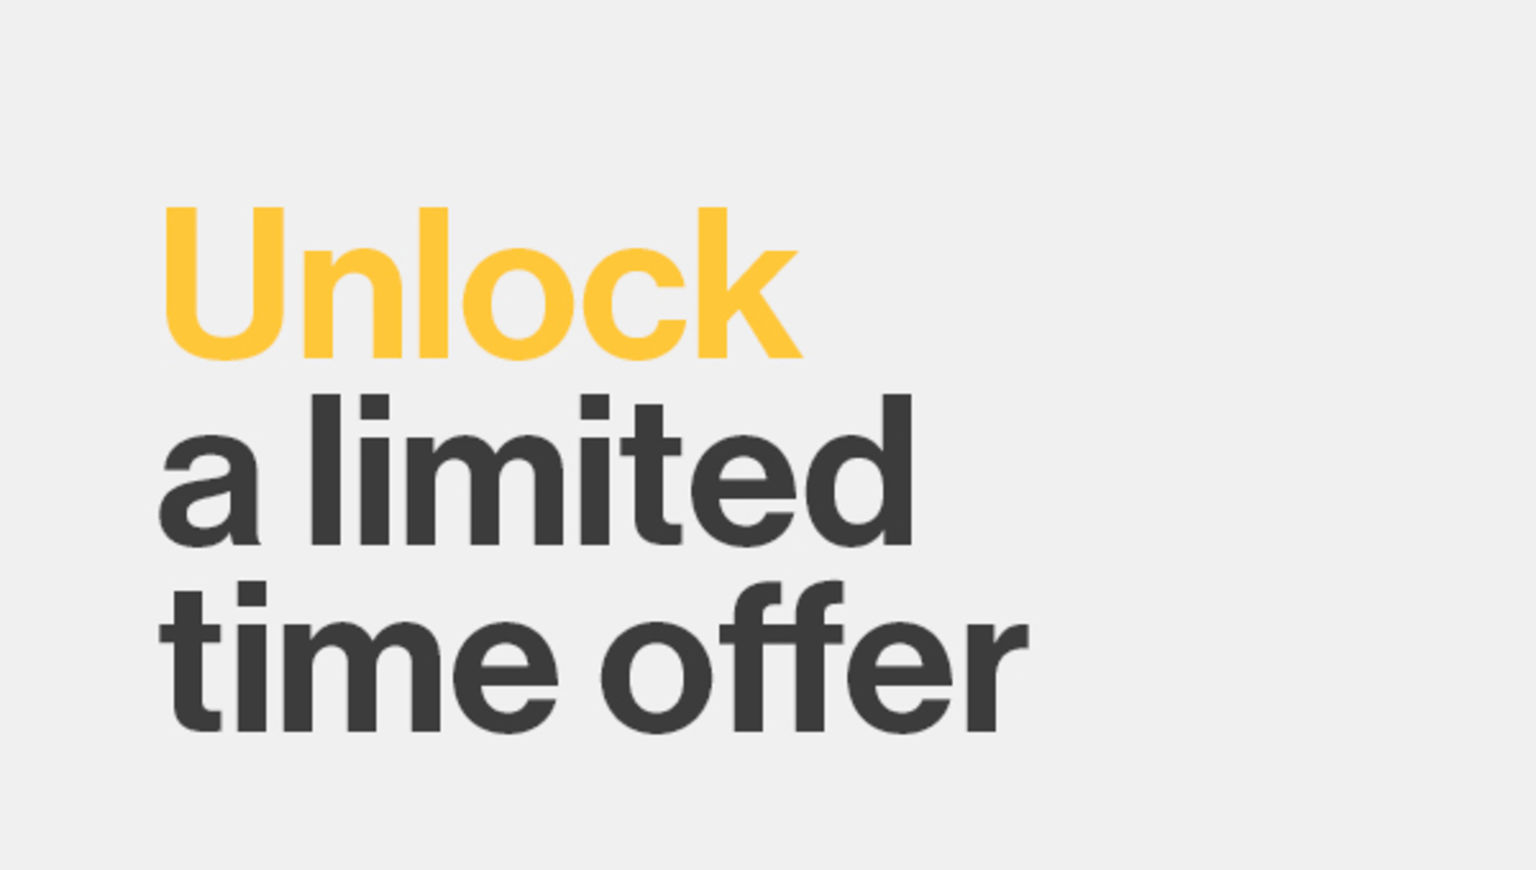 unlock a limited time offer